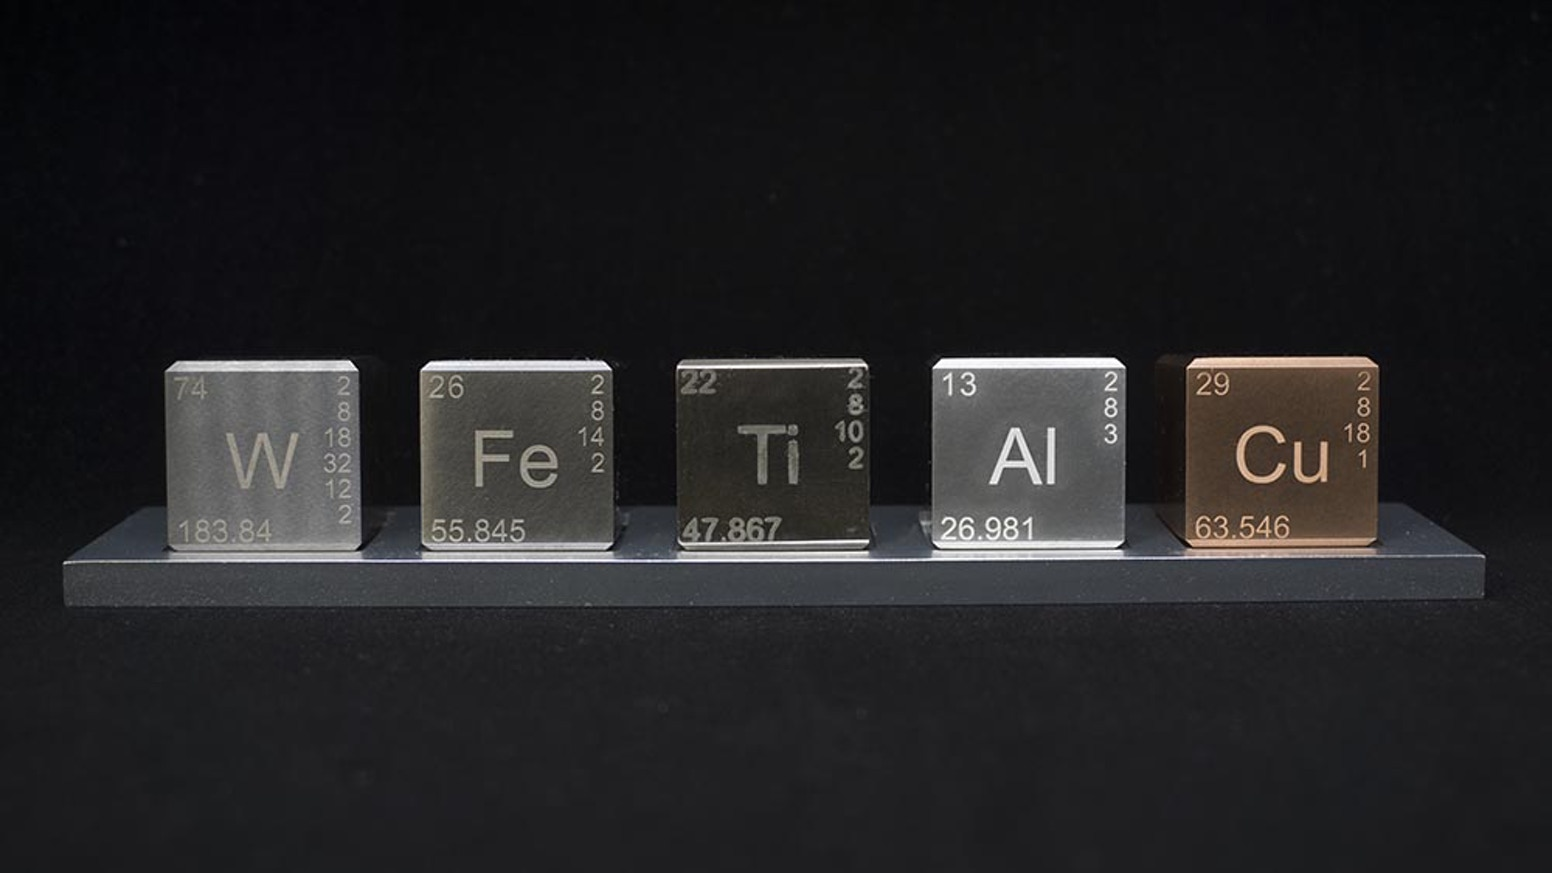 A beautiful desk ornament made of 4 unique elements from the periodic table.